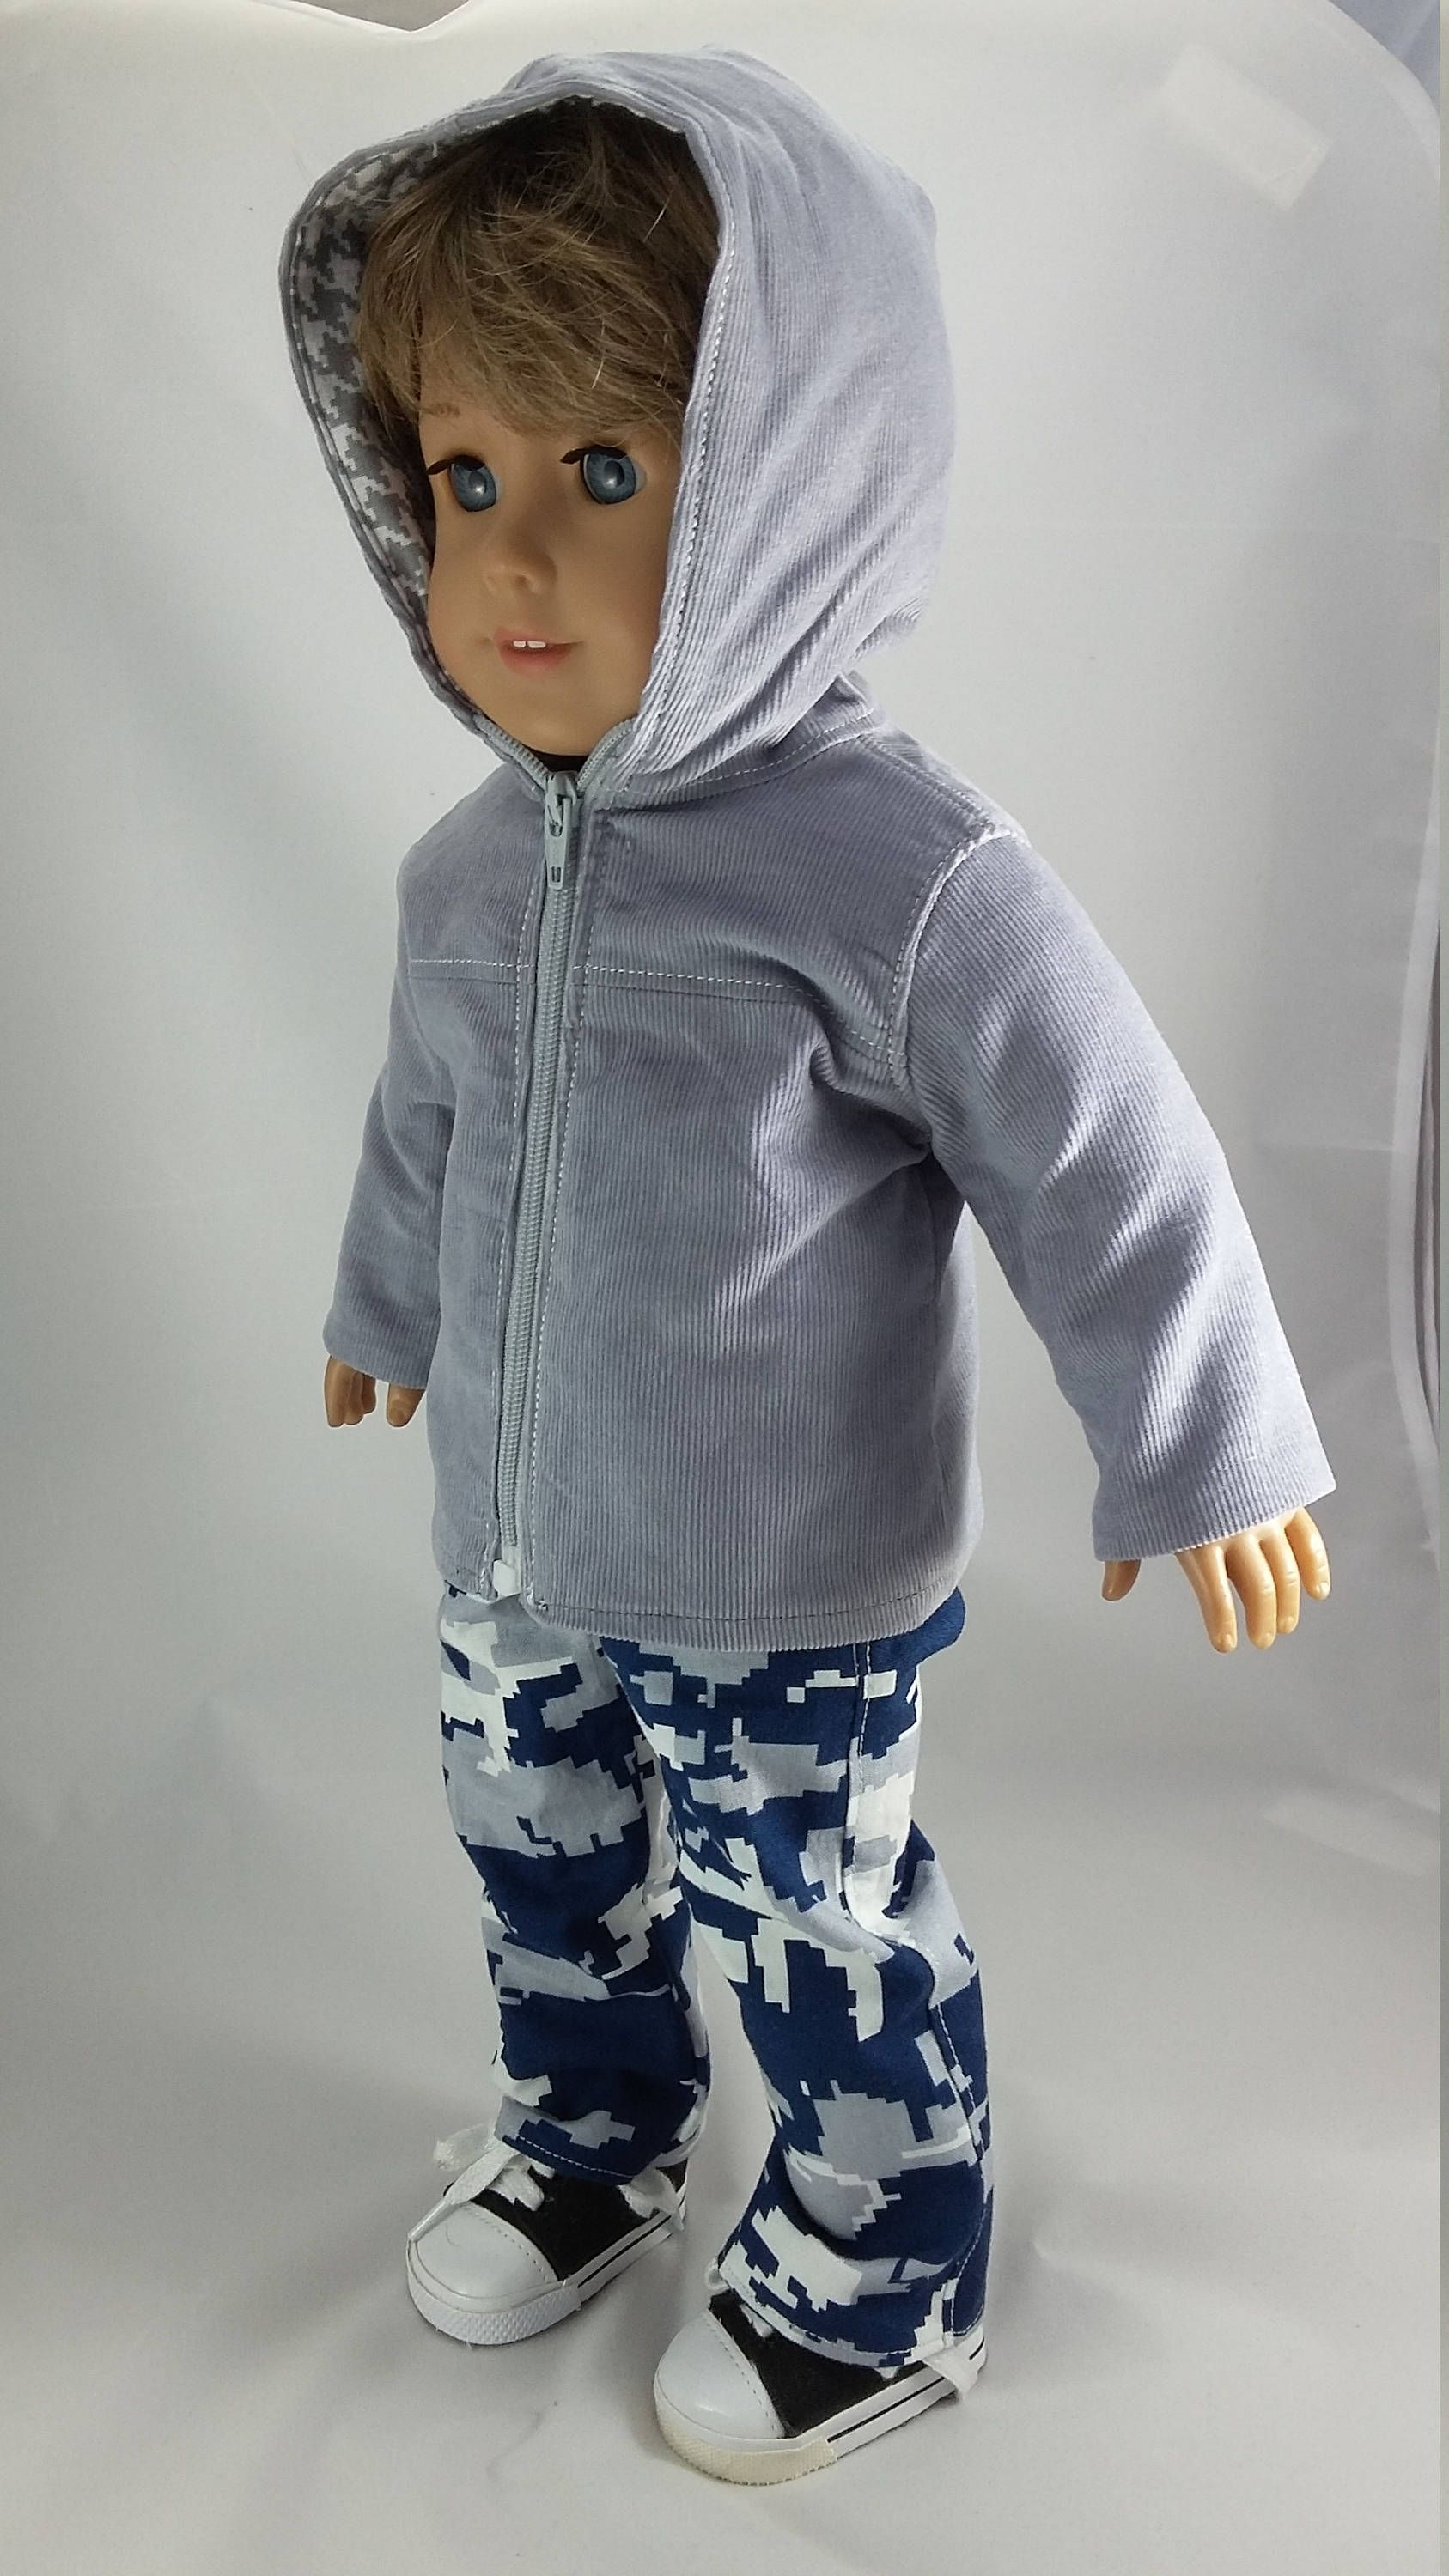 18 doll clothes - Boy's Grey hoodie coat and blue Camo Cargo pants #boydollsincamo 18 doll clothes - Boy's Grey hoodie coat and blue Camo Cargo pants by Grandmasadiescloset on Etsy #boydollsincamo 18 doll clothes - Boy's Grey hoodie coat and blue Camo Cargo pants #boydollsincamo 18 doll clothes - Boy's Grey hoodie coat and blue Camo Cargo pants by Grandmasadiescloset on Etsy #boydollsincamo 18 doll clothes - Boy's Grey hoodie coat and blue Camo Cargo pants #boydollsincamo 18 doll clothes - Boy's #boydollsincamo